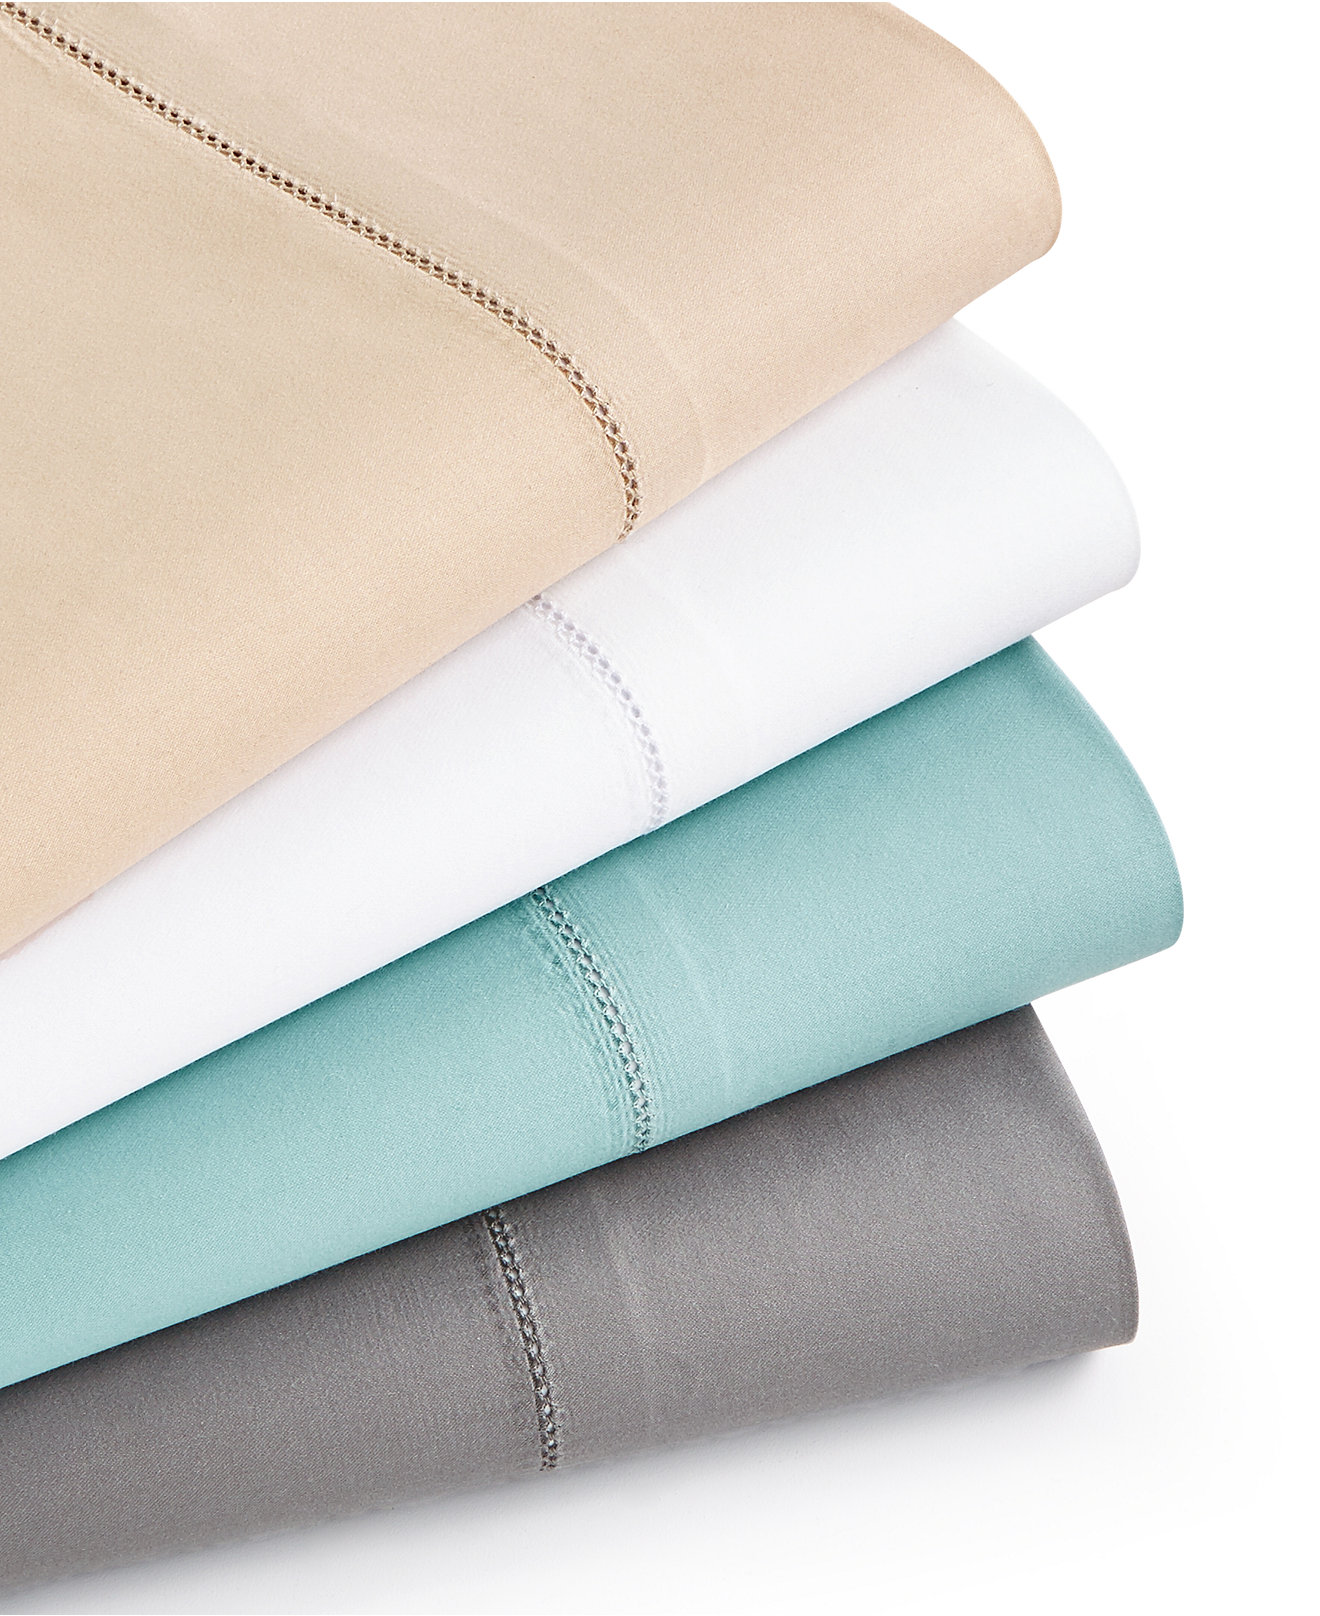 best sheet fabric 100 best fabric for sheets amazon com utopia